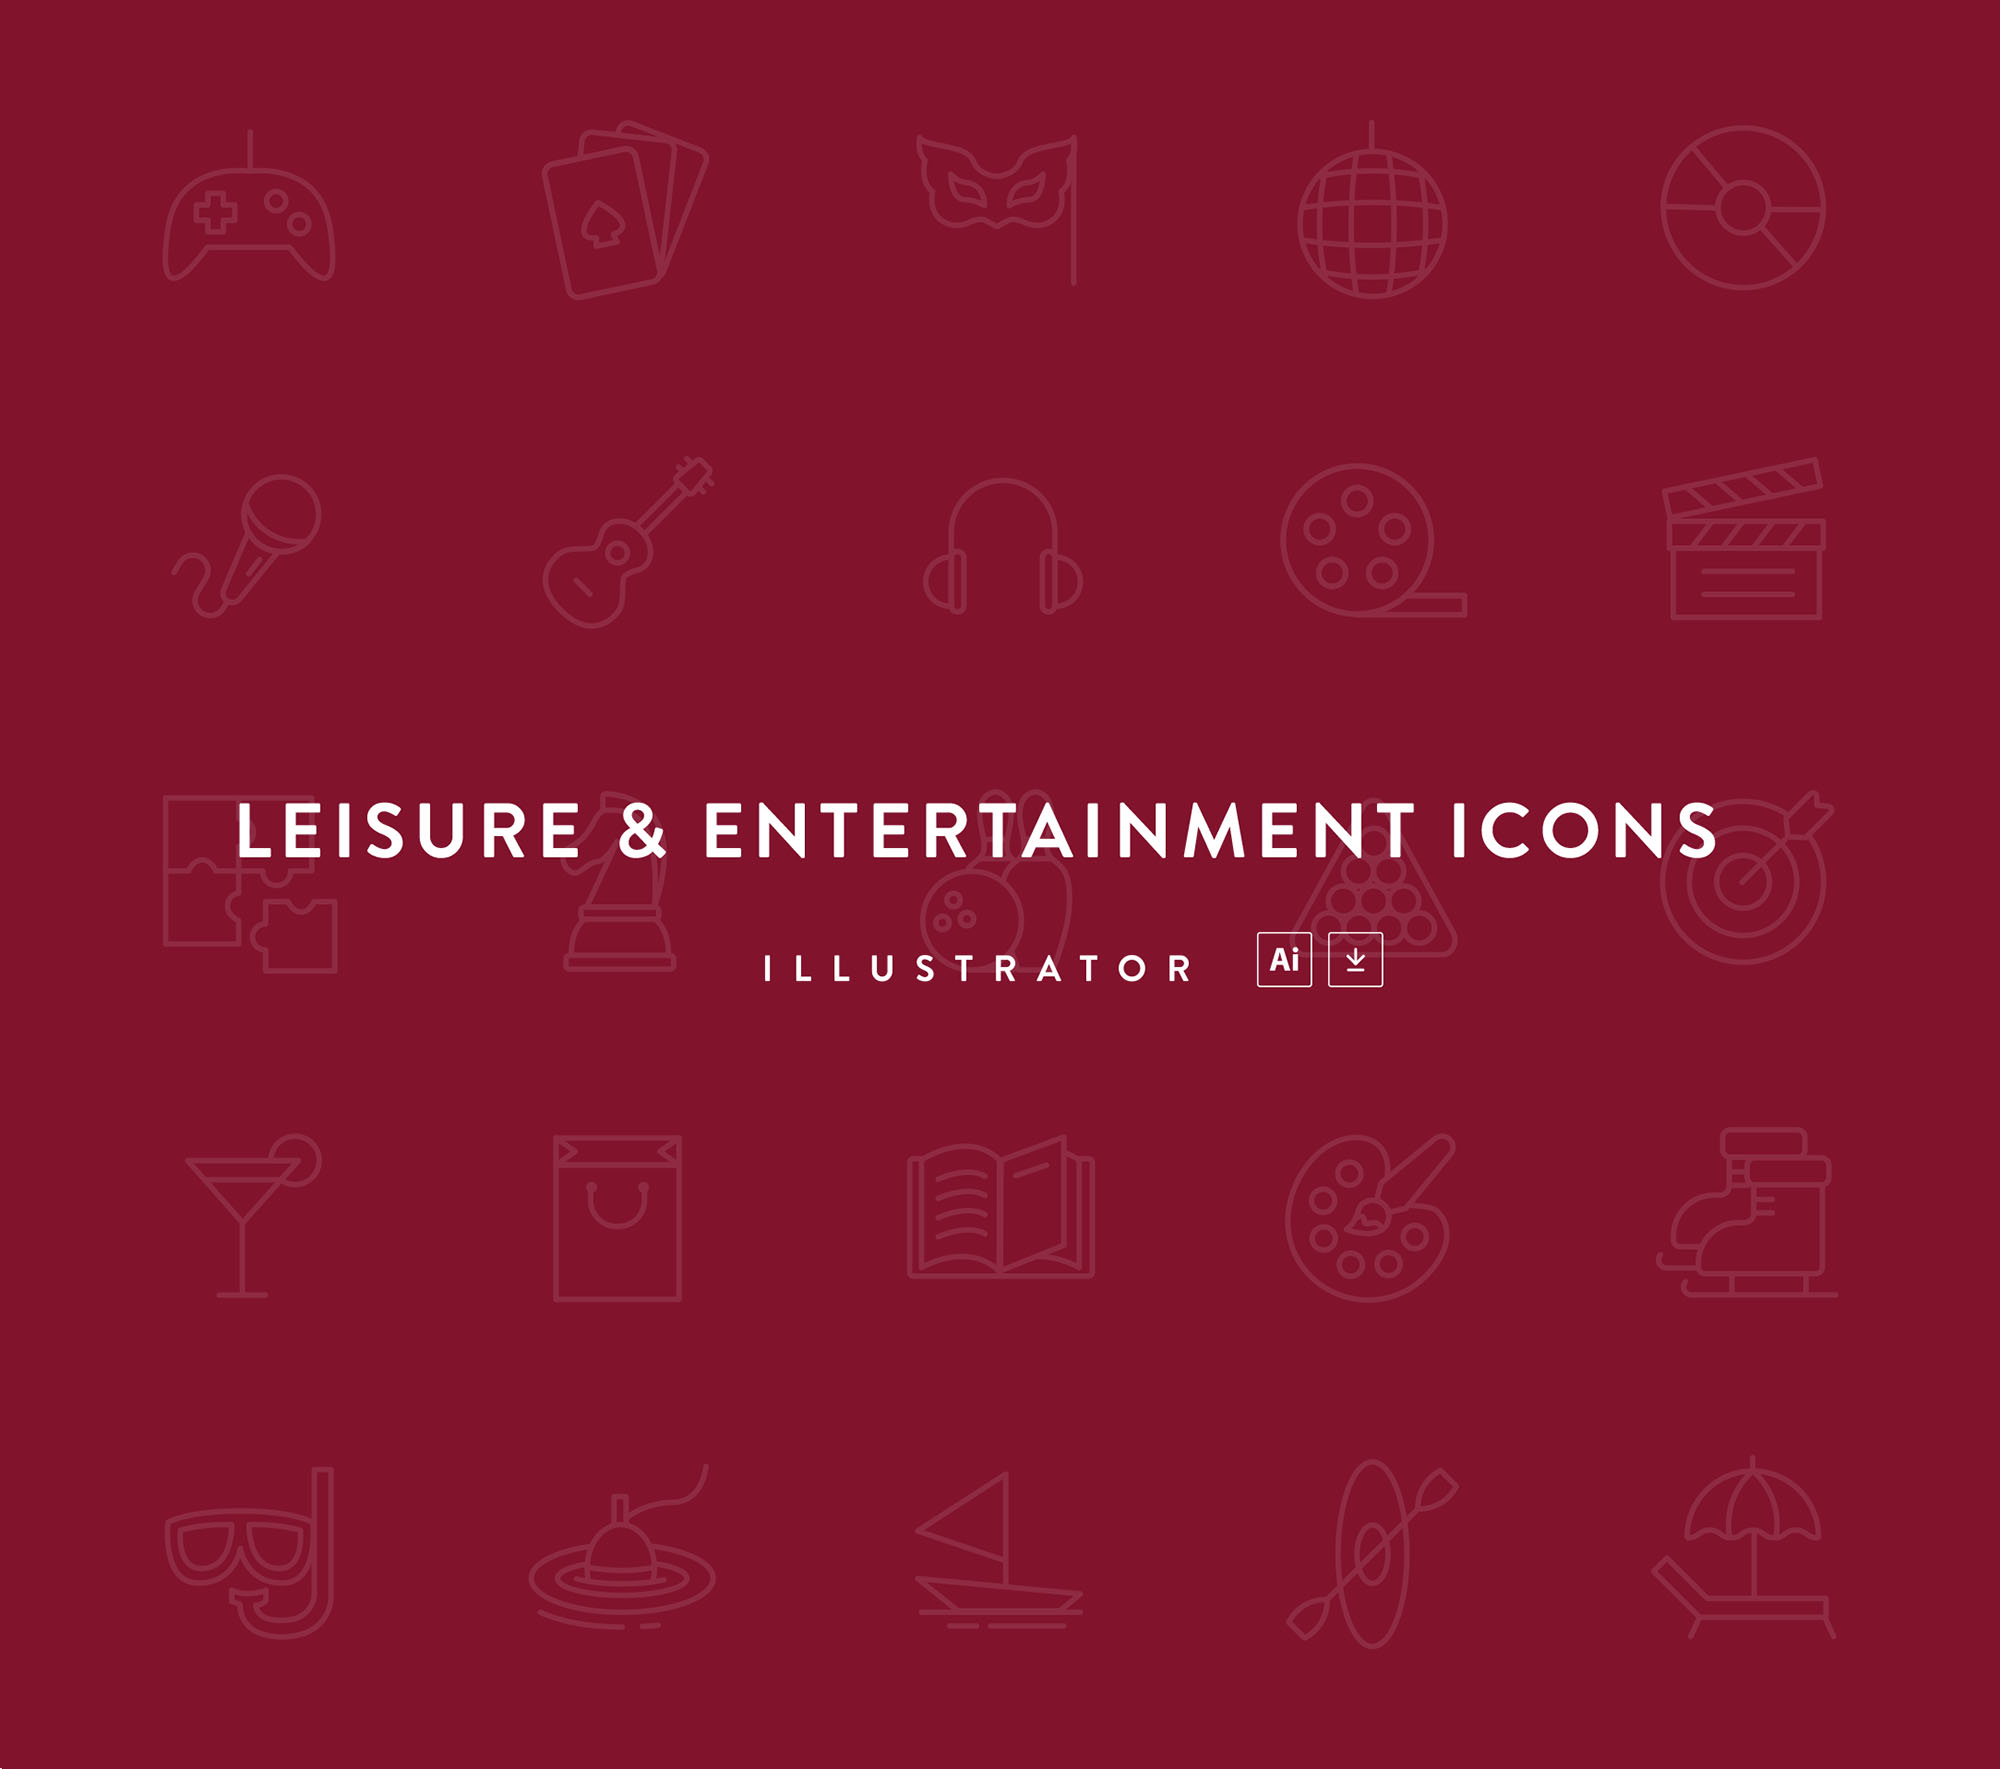 Leisure & Entertainment Icons